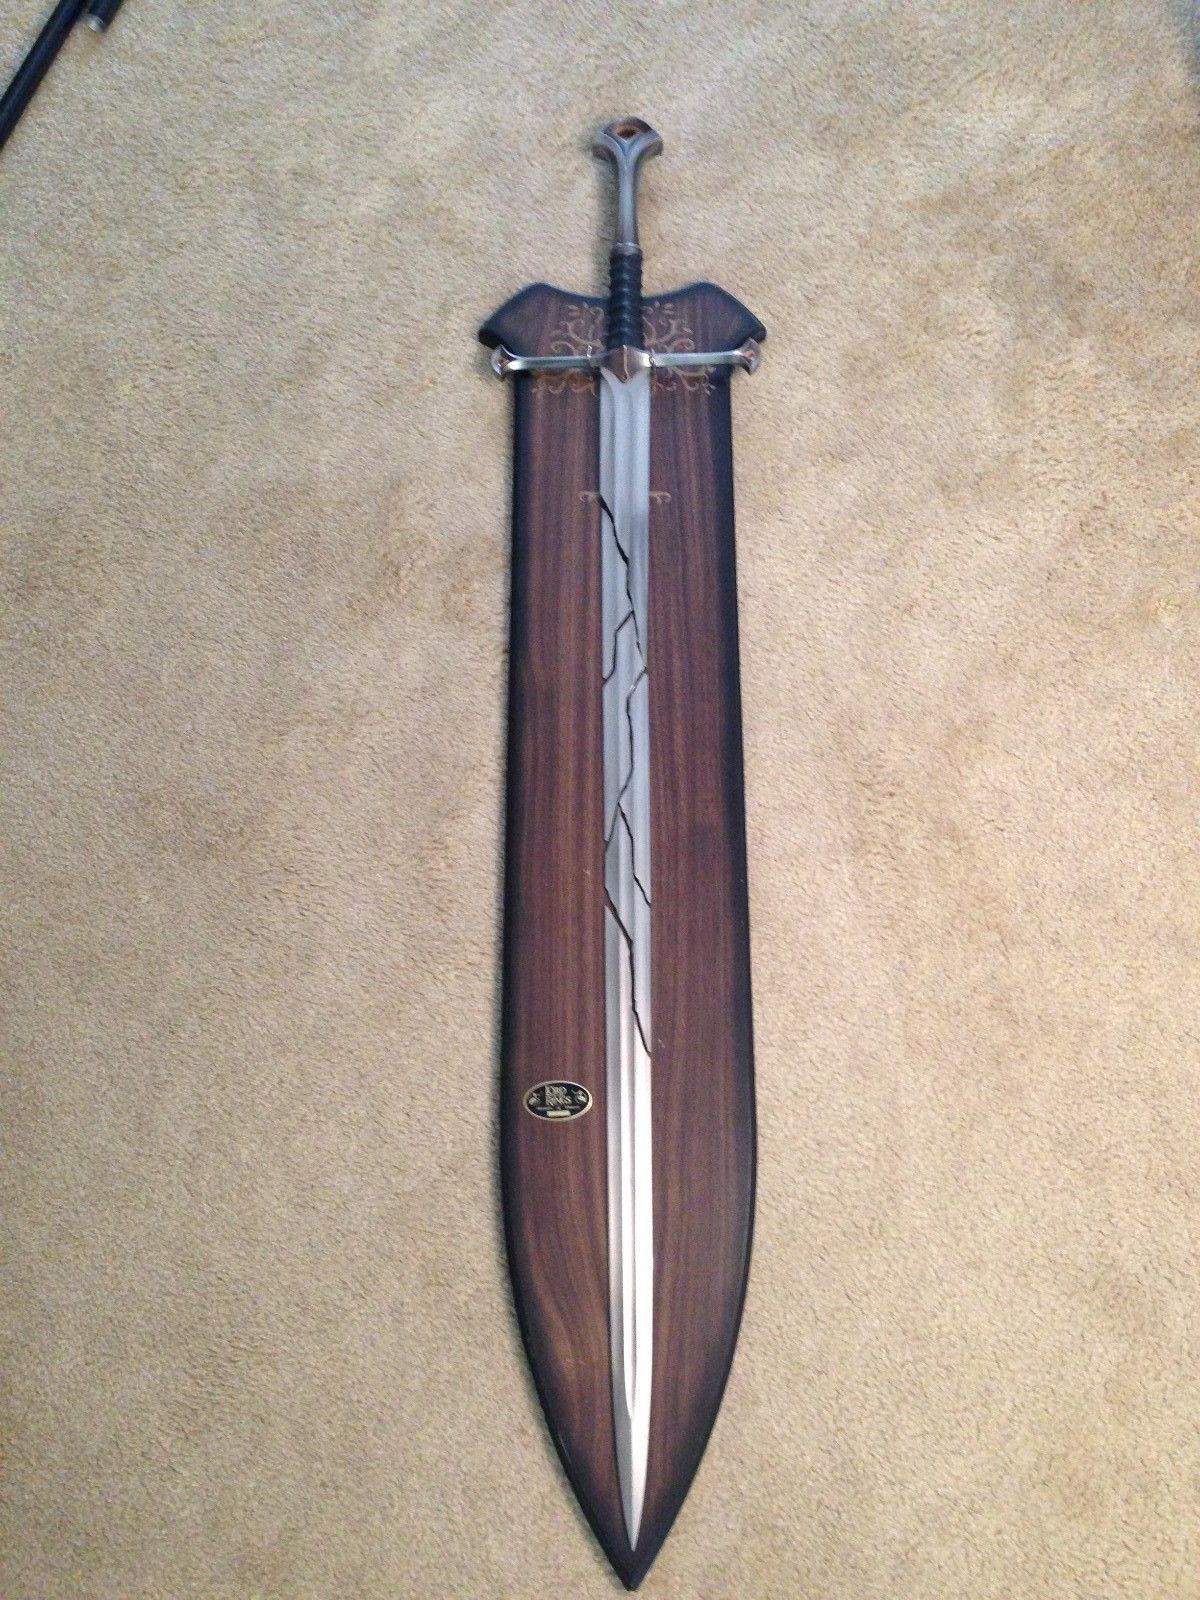 United lotr images uc1380aslb anduril jpg - Limited Edition United Cutlery Lotr Shards Of Narsil Sword Plaque Rare